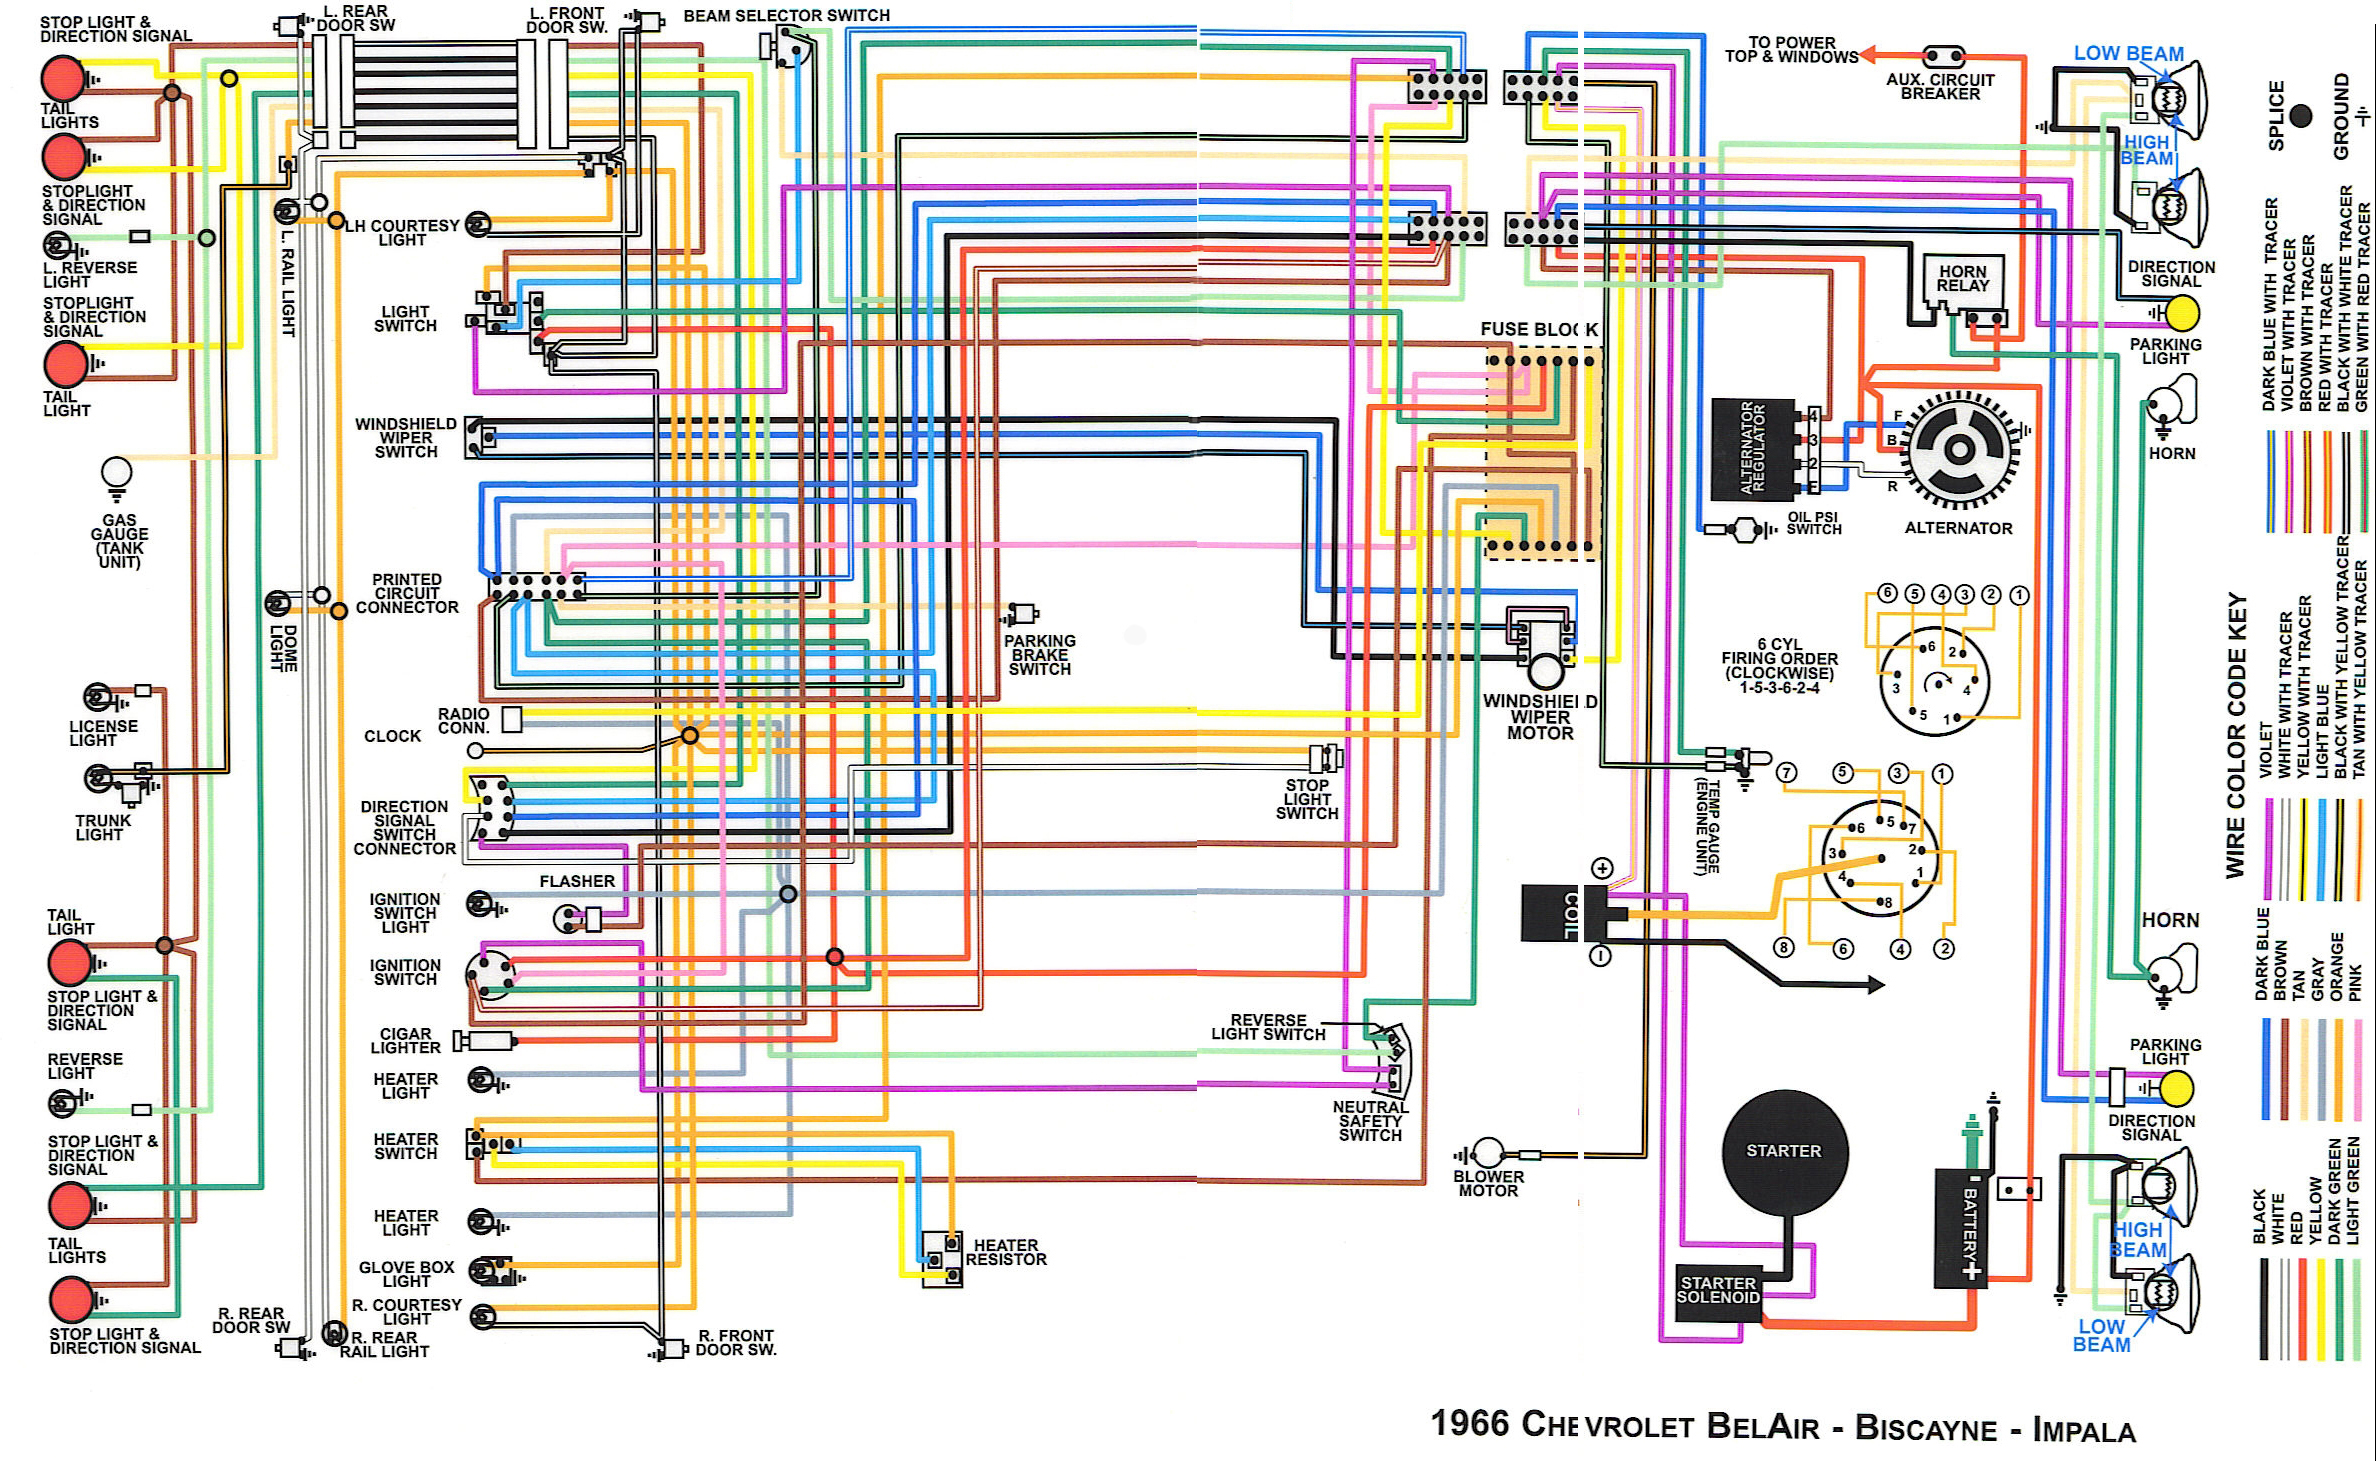 wiring schematic for 1966 chevelle wiring diagramwiring diagrams for 68 chevelle wiring diagram1968 chevelle wiring diagram wiring diagram msd rpm activated switch